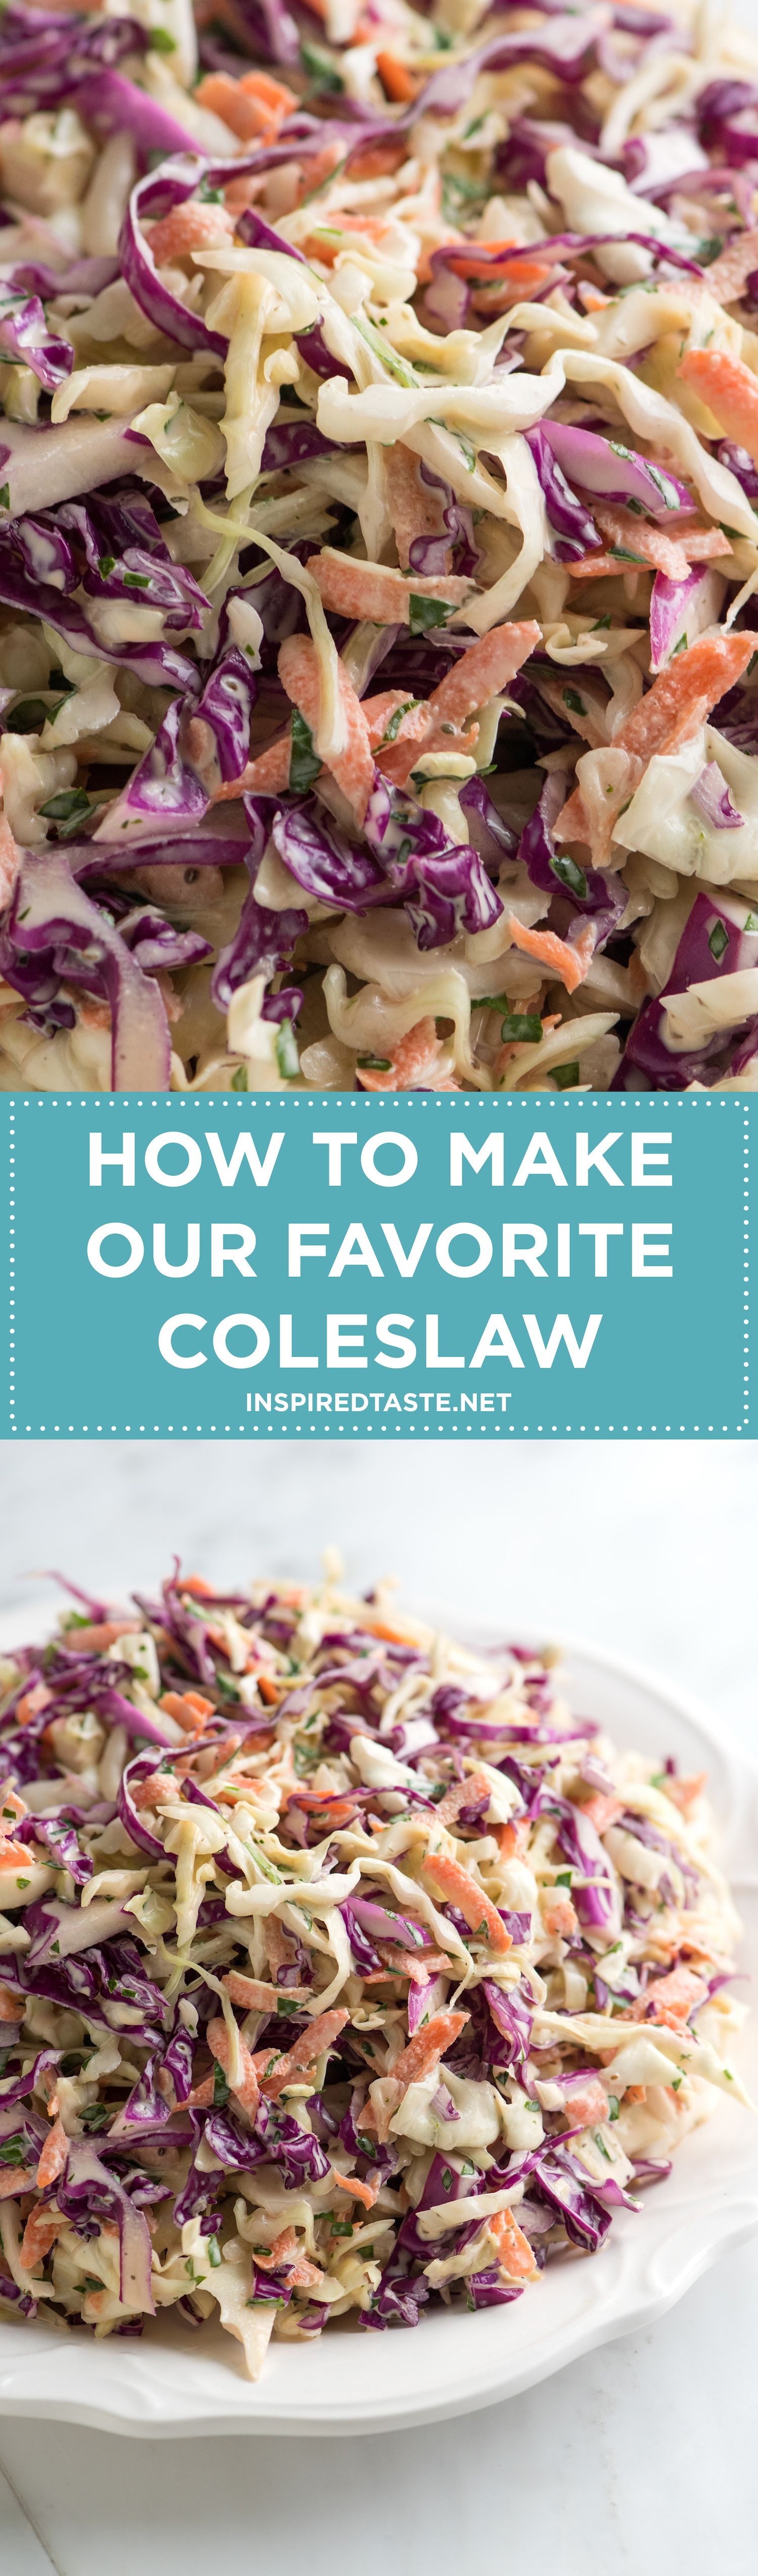 Seriously Good Homemade Coleslaw | Recipe | Popular Pins | Coleslaw, Recipes, Salads